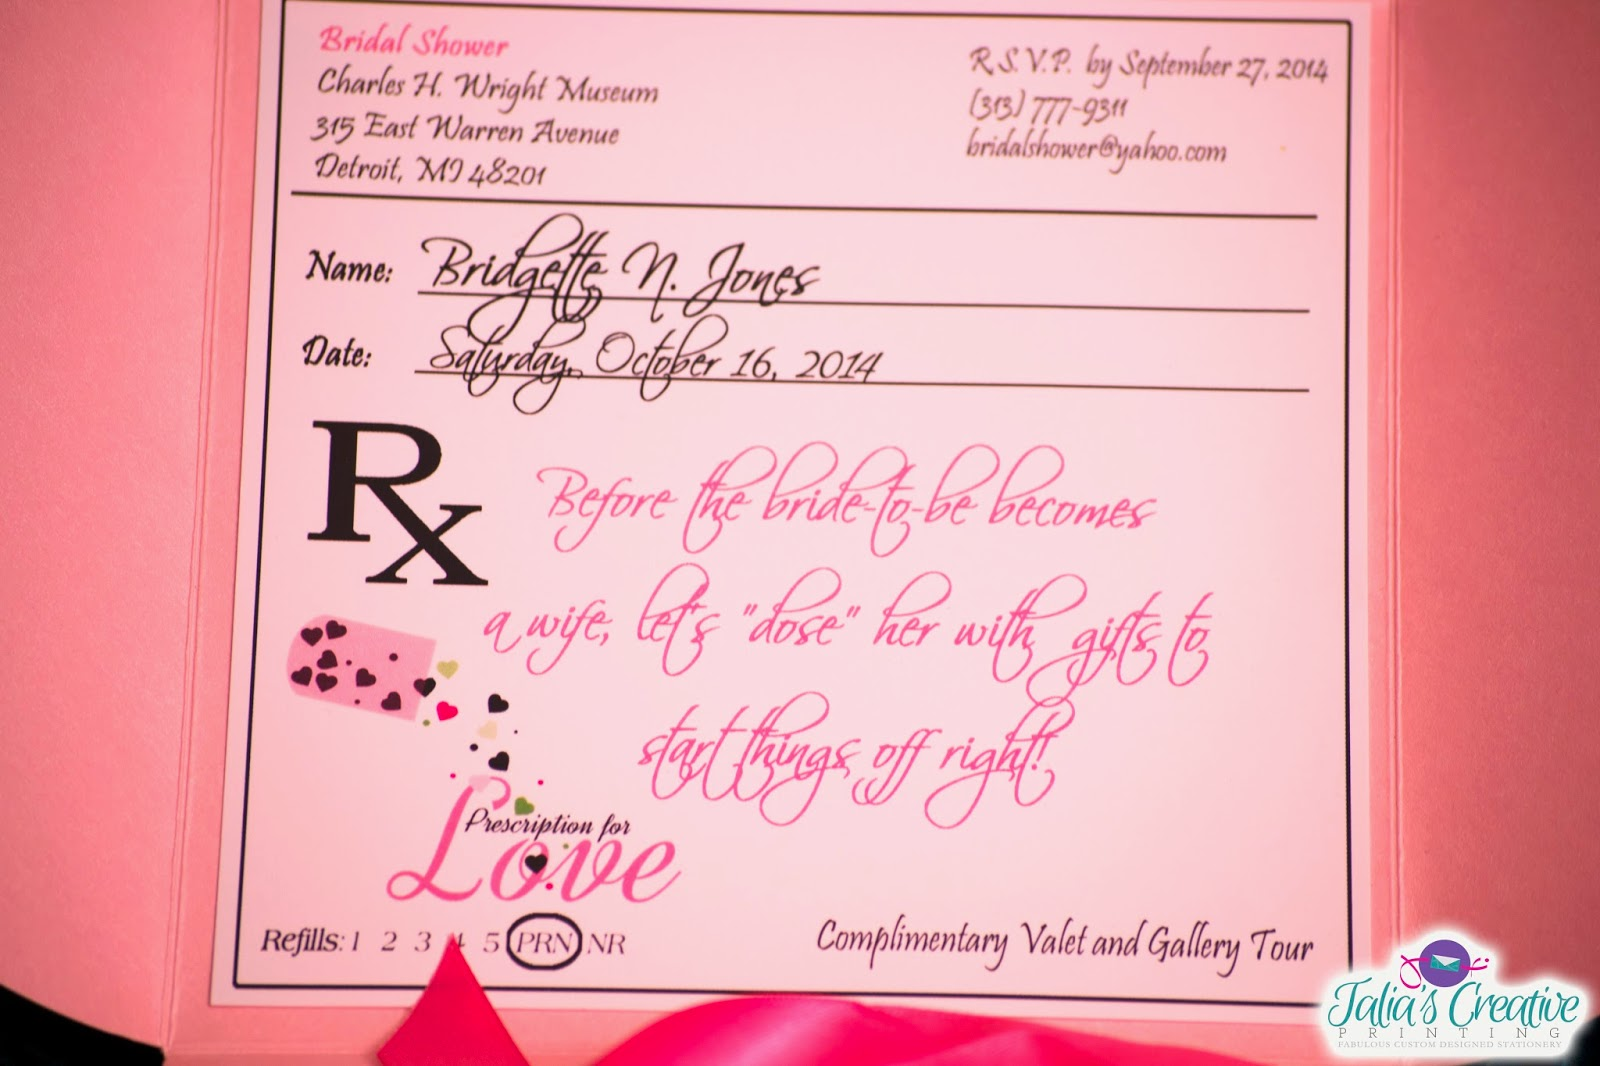 Michaels crafts wedding invitations - The Prescription Pad Invitation Is Enclosed Inside Of A Metallic Petal Card Tied With A Ribbon Using The David S Bridal Ribbon Tying Method